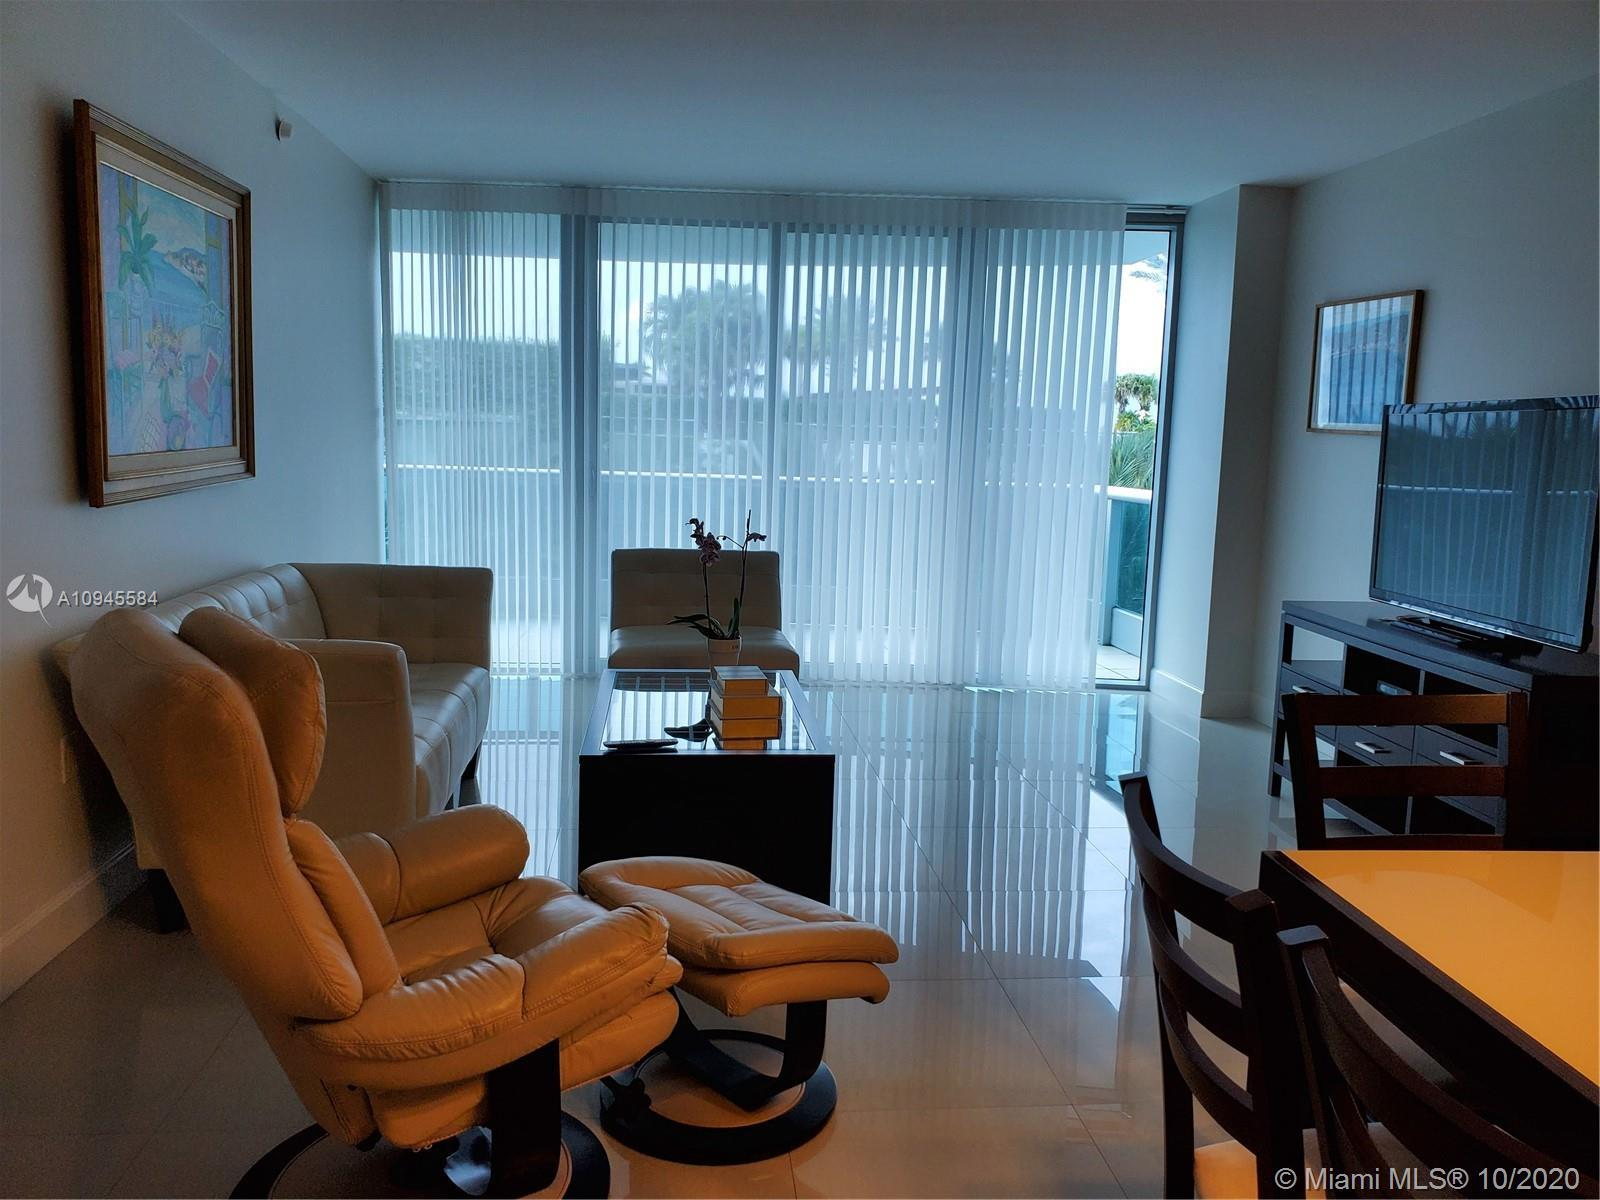 Luxury High-Rise Beachfront Building located in Surfside. High ceilings, floor to ceiling windows, e